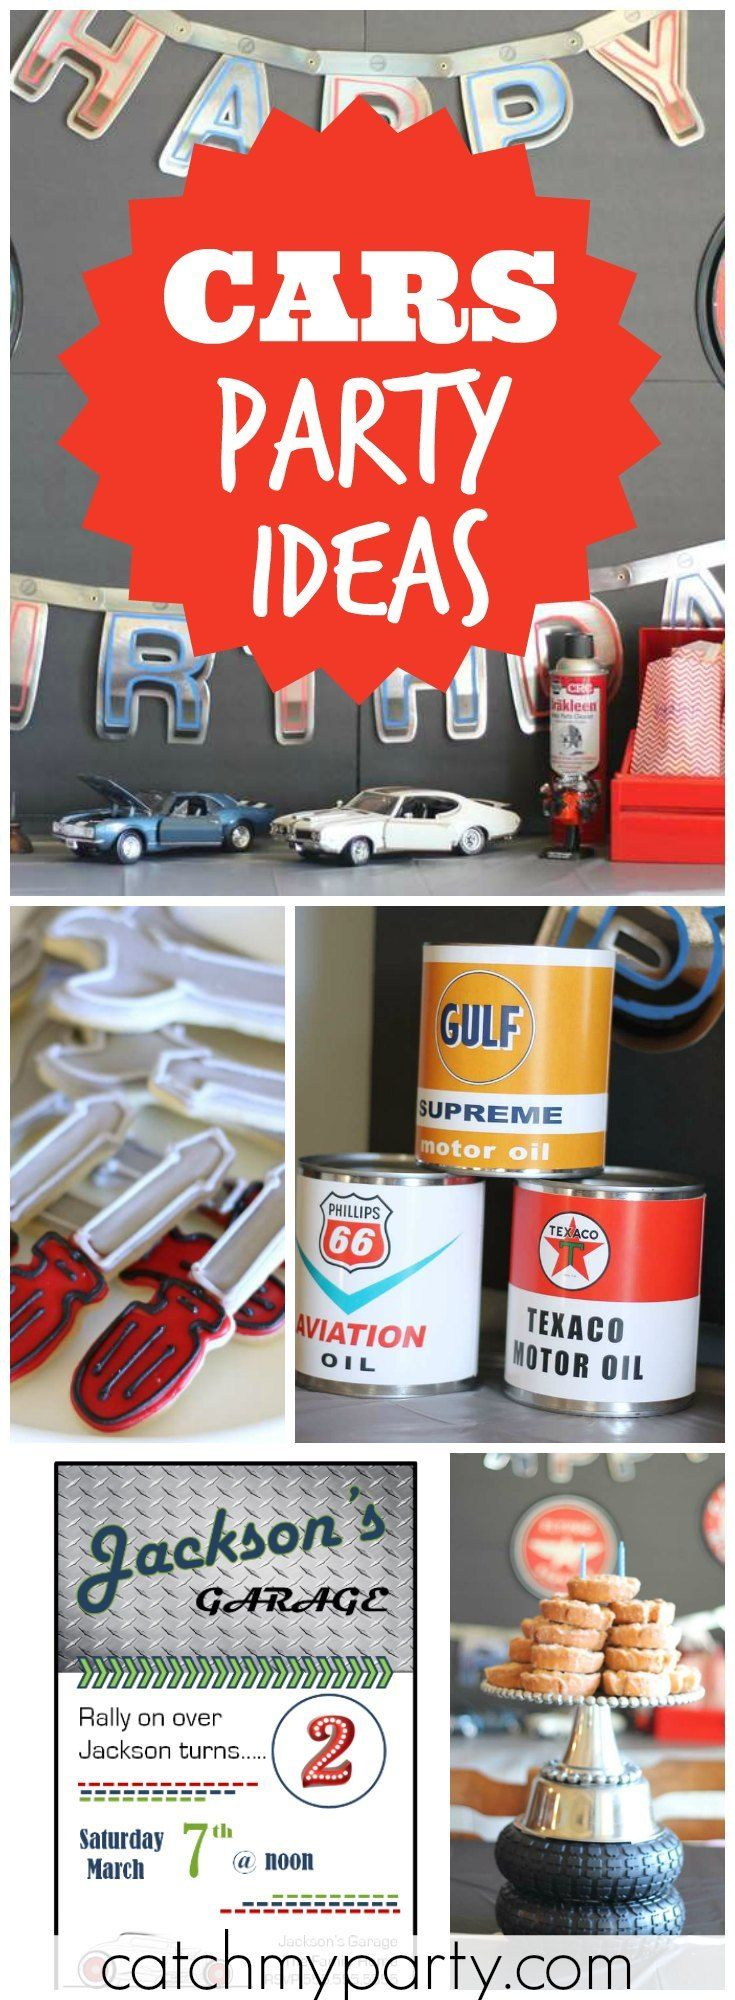 How cool is this classic, vintage car birthday party?! See more party ideas at Catchmyparty.com!